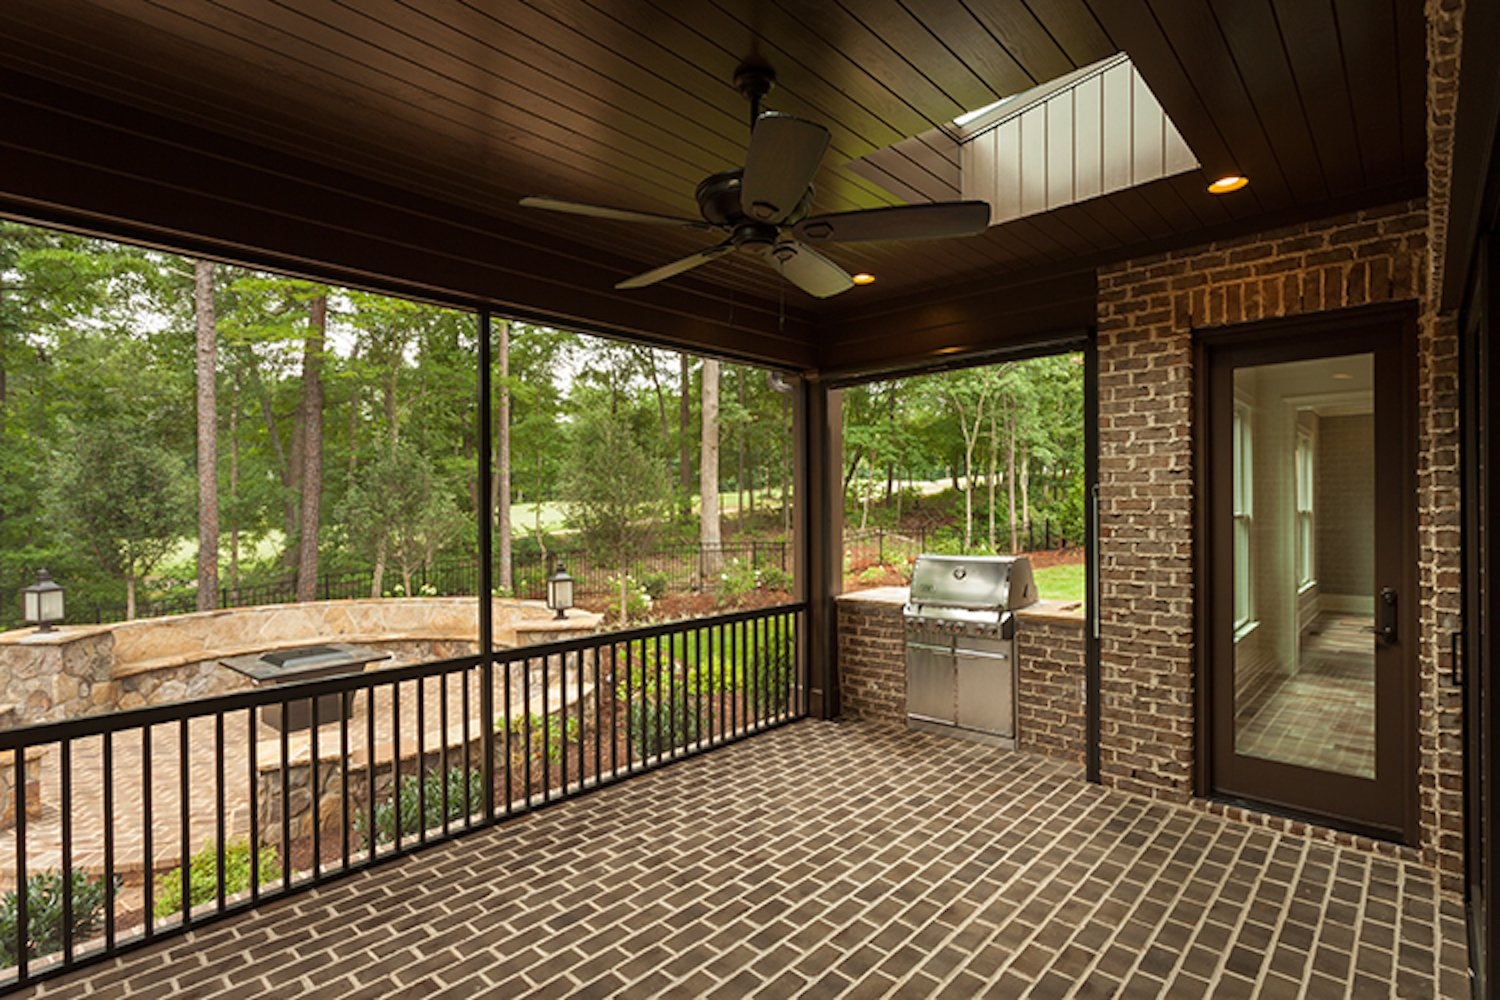 Simonini Builder, Tysinger Home, 755 Mendenhall Ct., Fort Mill SC 29715